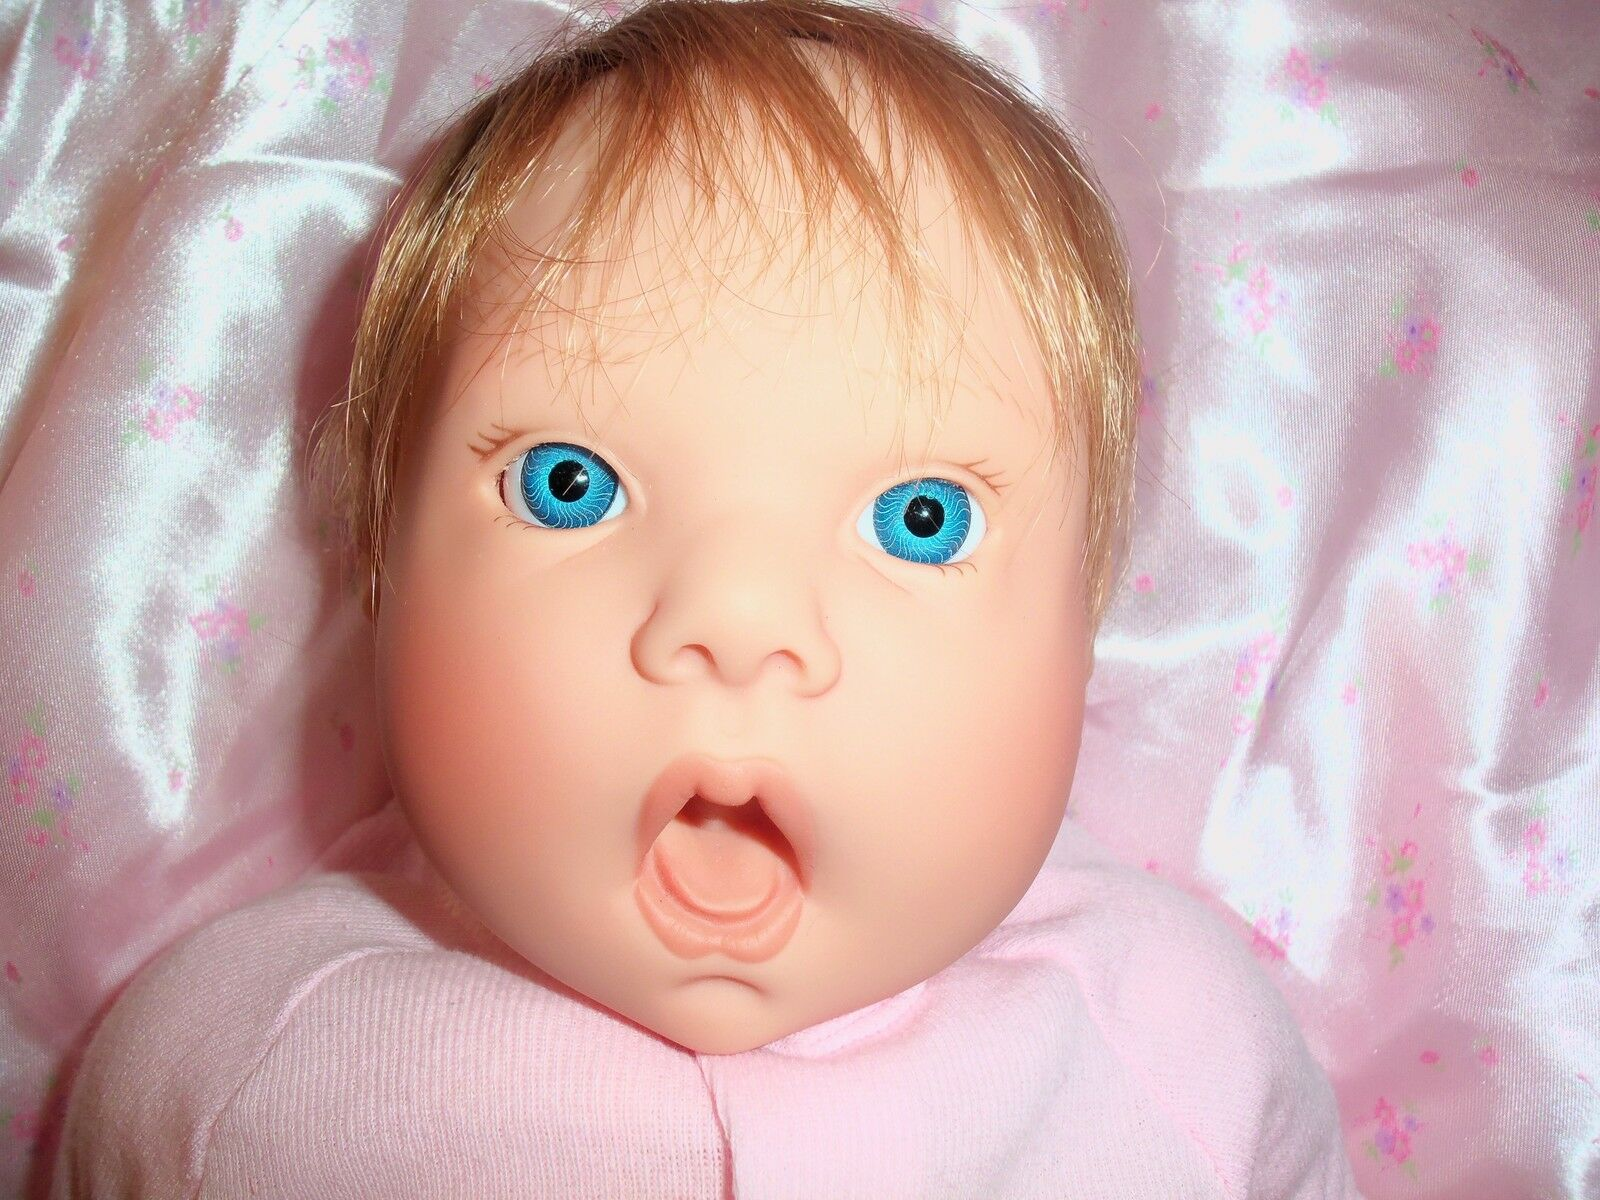 Lee middleton 1994 beautiful blonde blue eye girl baby doll looks real